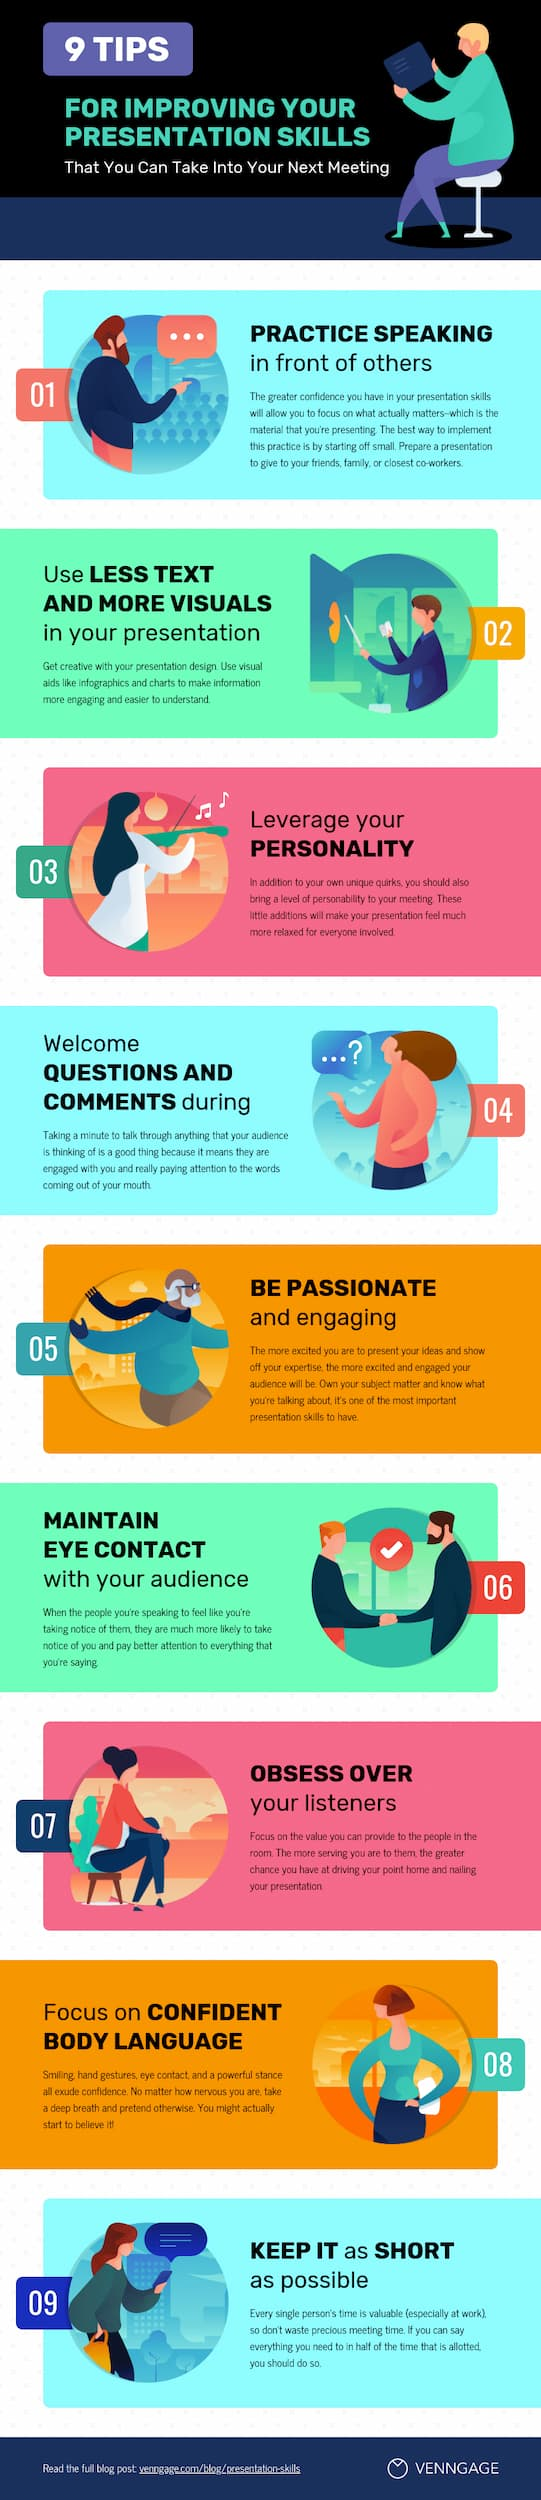 9 Tips for Improving your Presentation Skills Infographic